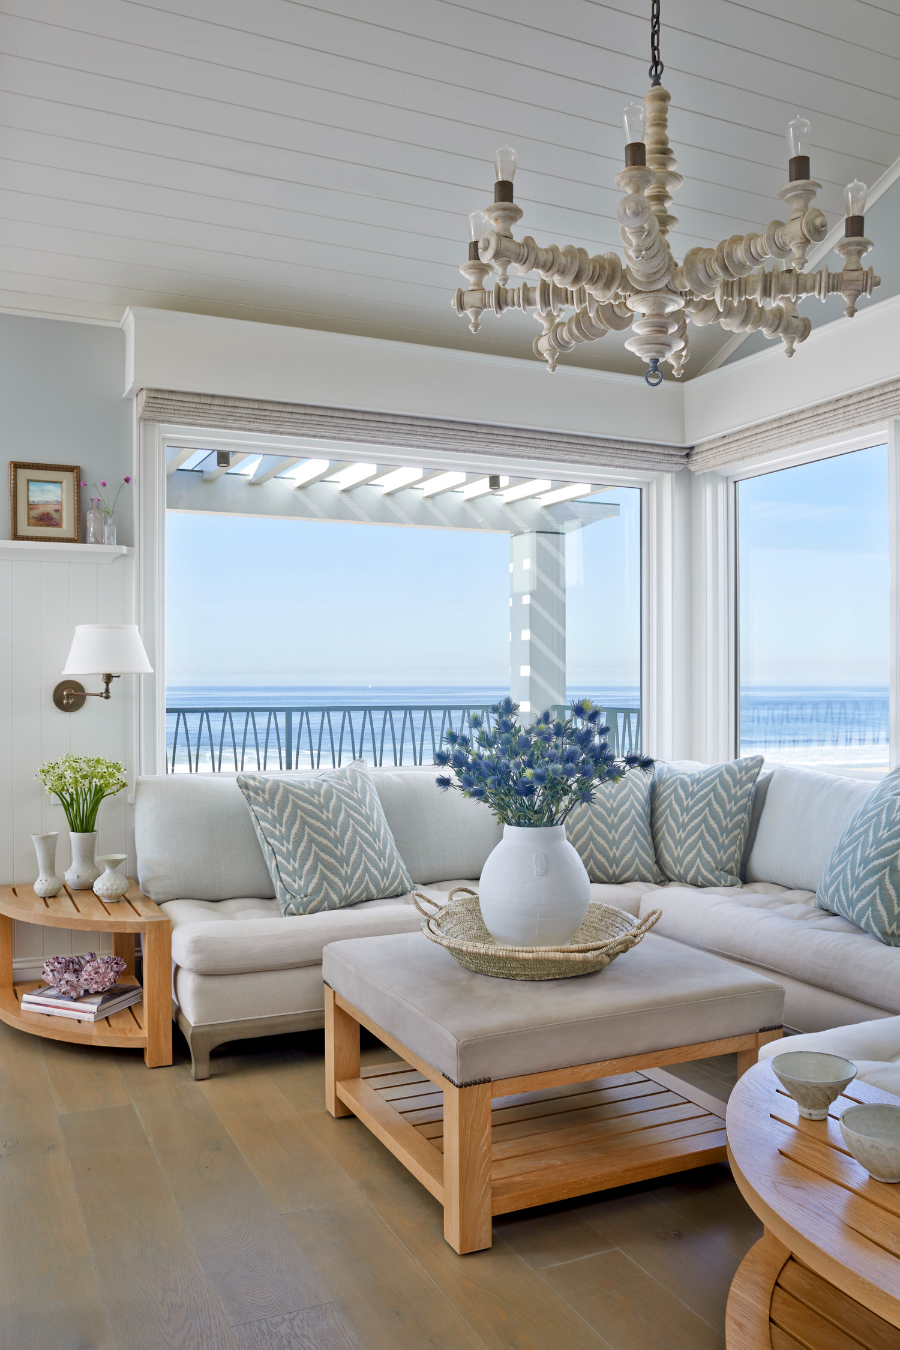 10 Amazing Interiors ideas by Jeff Andrews 10 amazing interiors ideas by jeff andrews 10 Amazing Interiors ideas by Jeff Andrews 10 Amazing Interiors ideas by Jeff Andrews 8